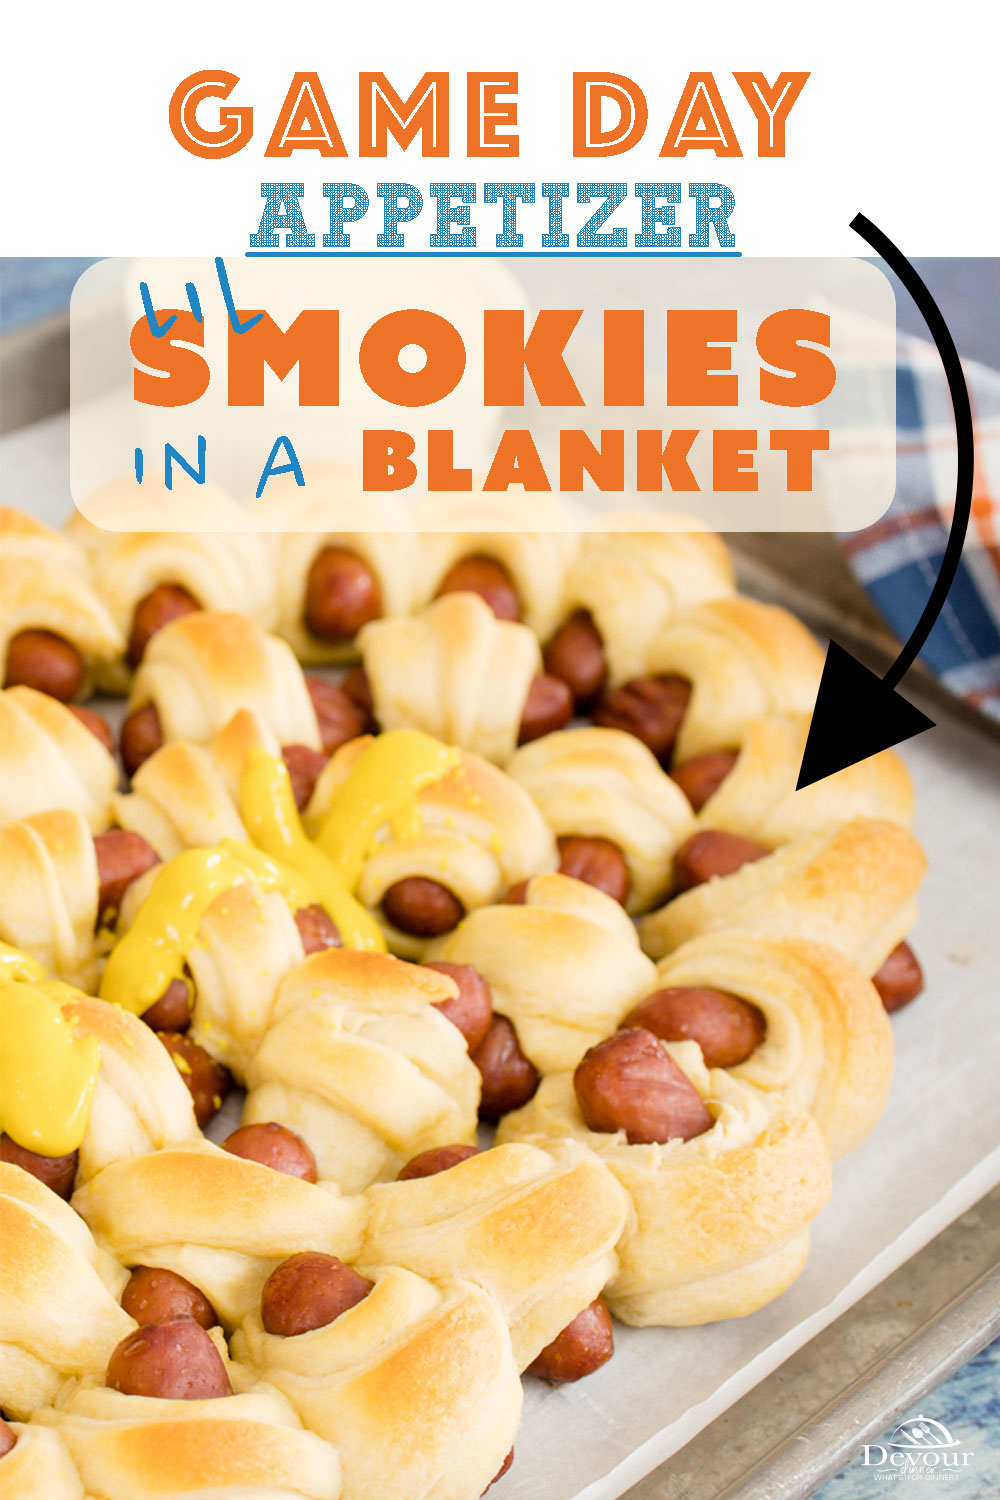 Lil Smokies Pigs in a Blanket is a favorite for generations. Quick and easy made with Cocktail Weenies, Crescent Rolls and topped with Ketchup, BBQ Sauce, Ranch, or Honey Mustard. Easy Recipe to let the Kids help too. Fun for Super Bowl Parties, Game Nights or just because. #devourdinner #devourpower #superbowlappetizer #superbowlsnacks #feedfeedathome #huffposttaste #todayfood #food52grams #onthetable #shareyourtable #appetizerrecipe #appetizers #pigsinablanket #lilsmokiesinablanket #yum